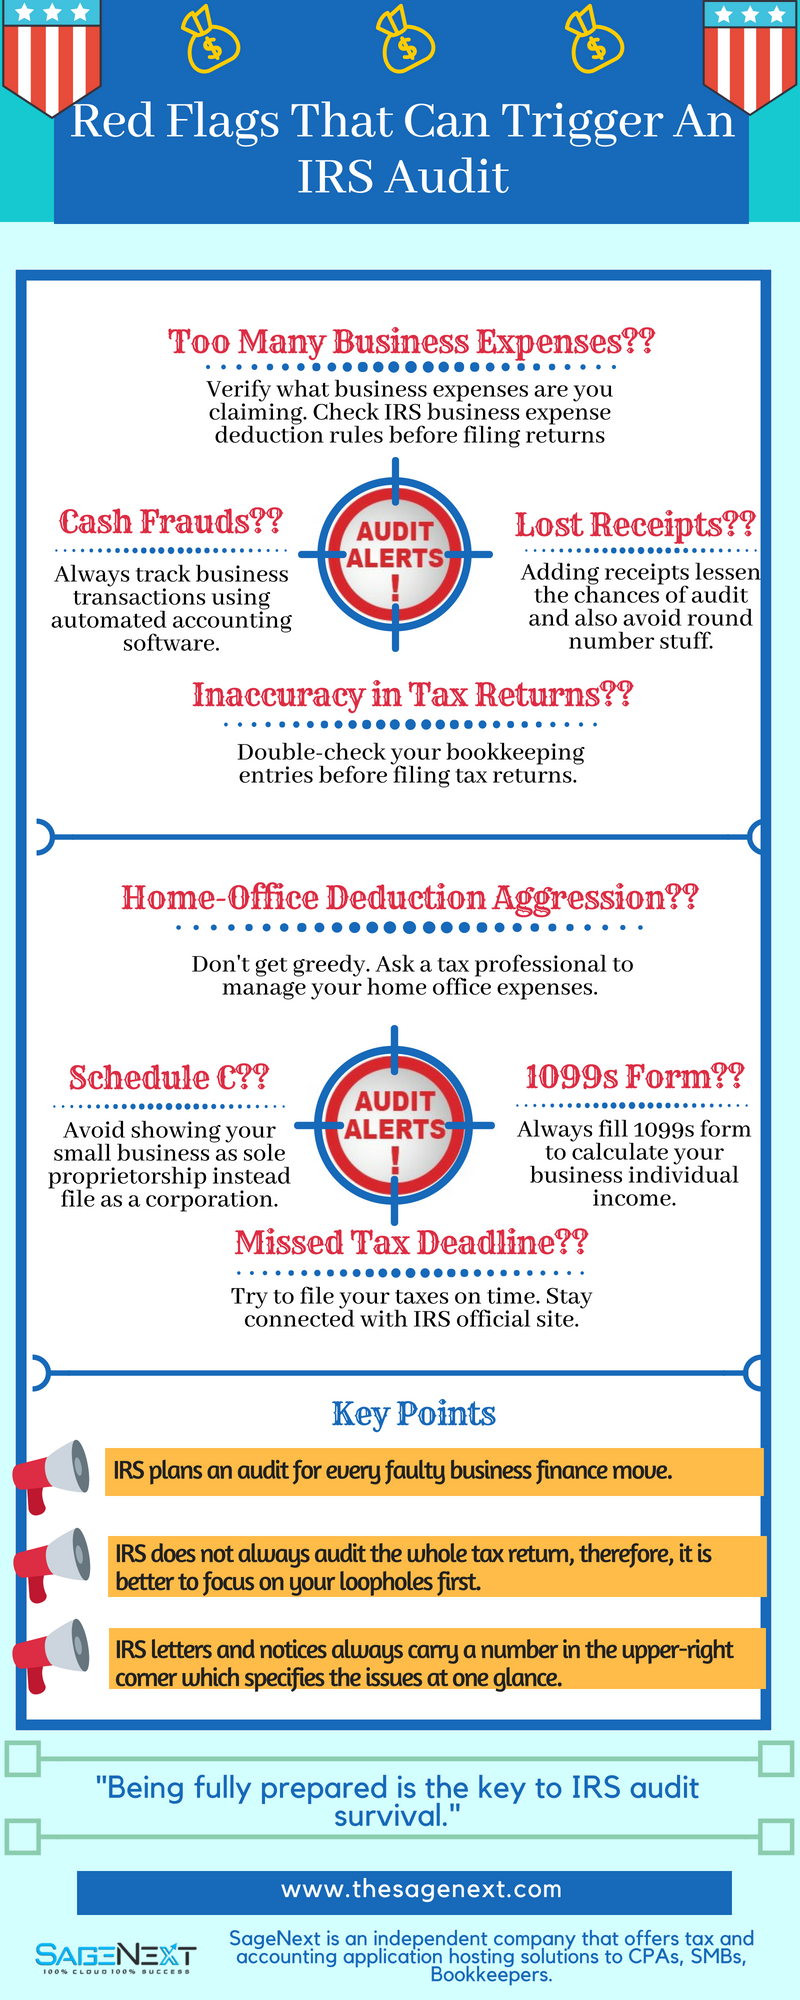 Red Flags That Can Trigger An IRS Audit!![Infographic]